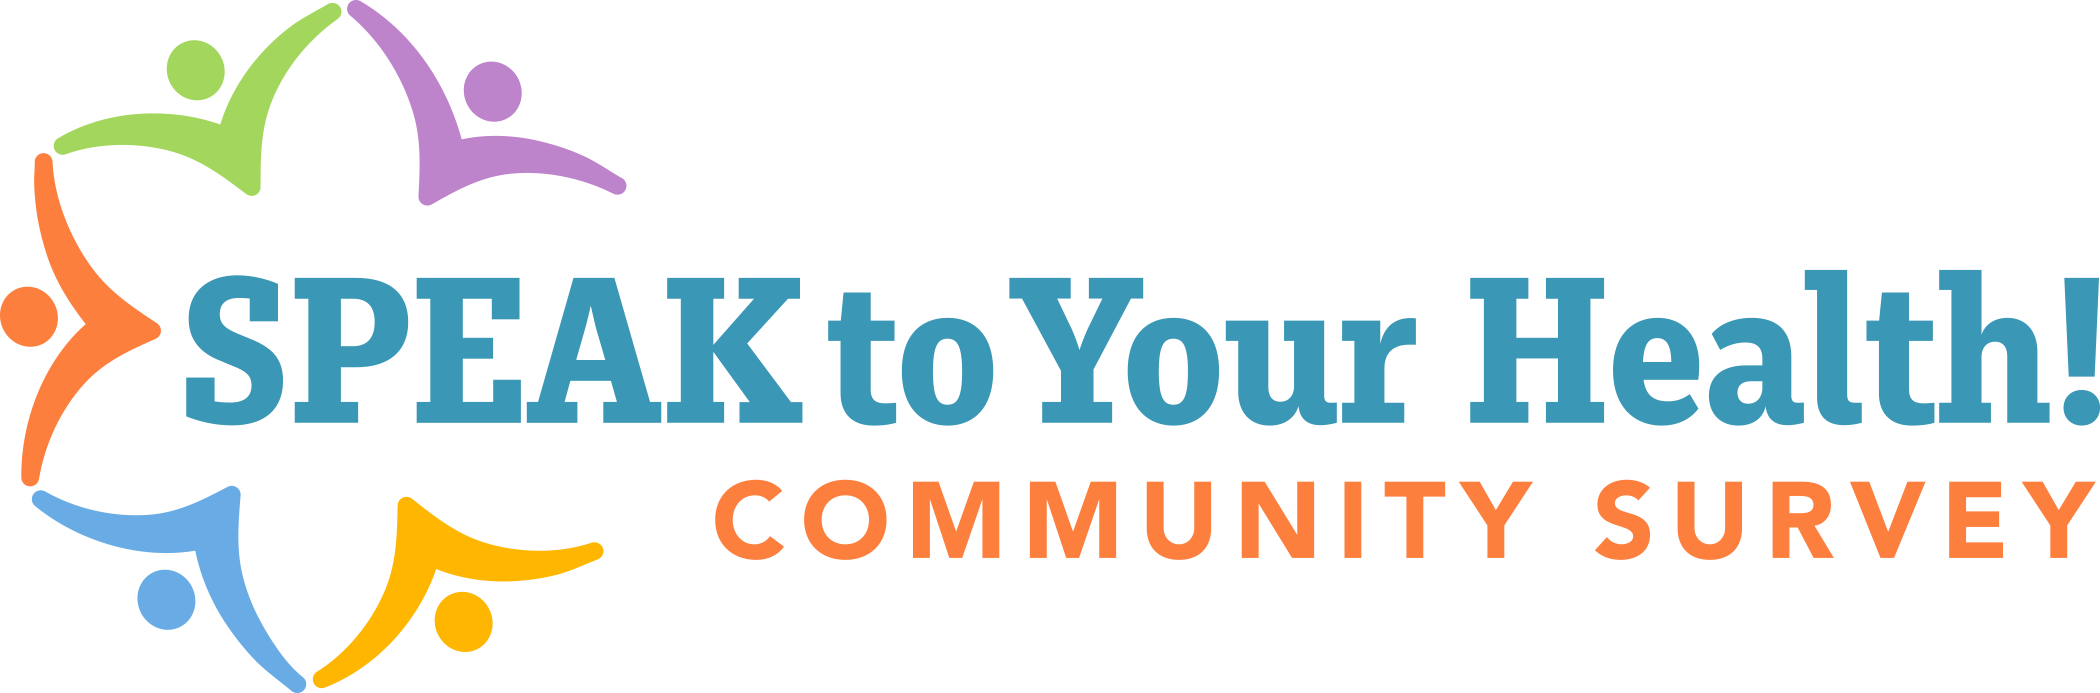 The Speak To Your Health! Community Survey Committee